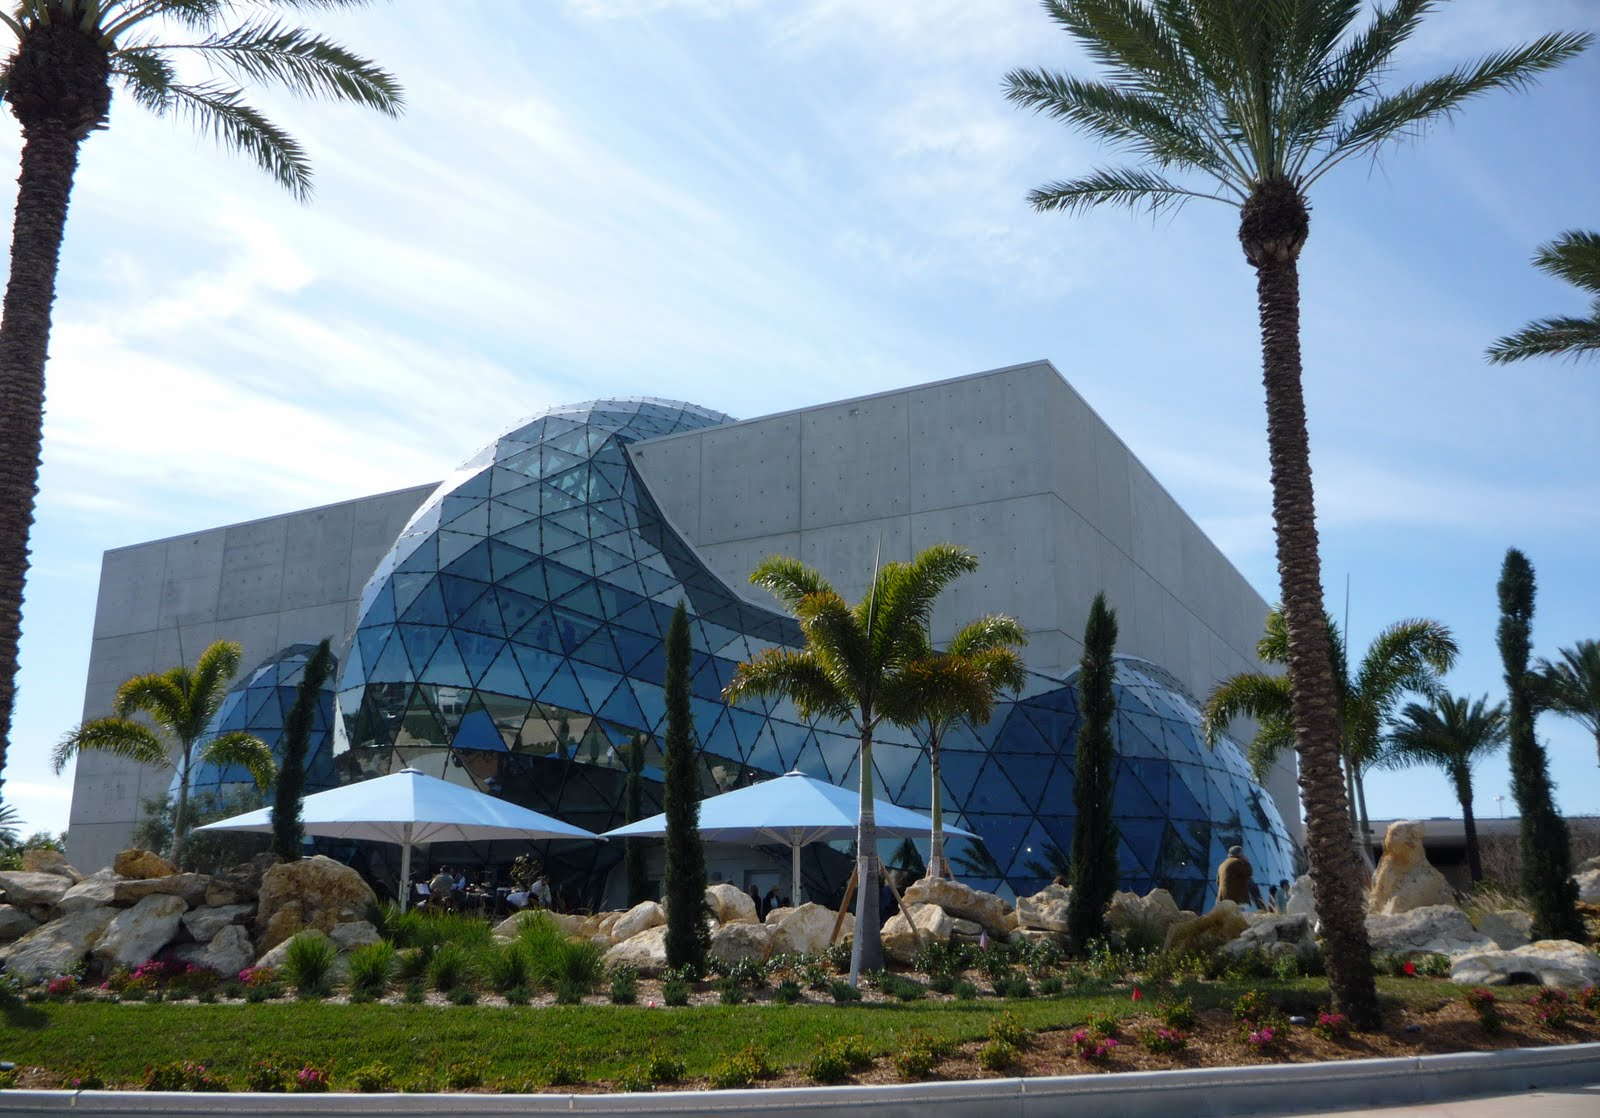 The New Dali Museum In St Pete, Florida